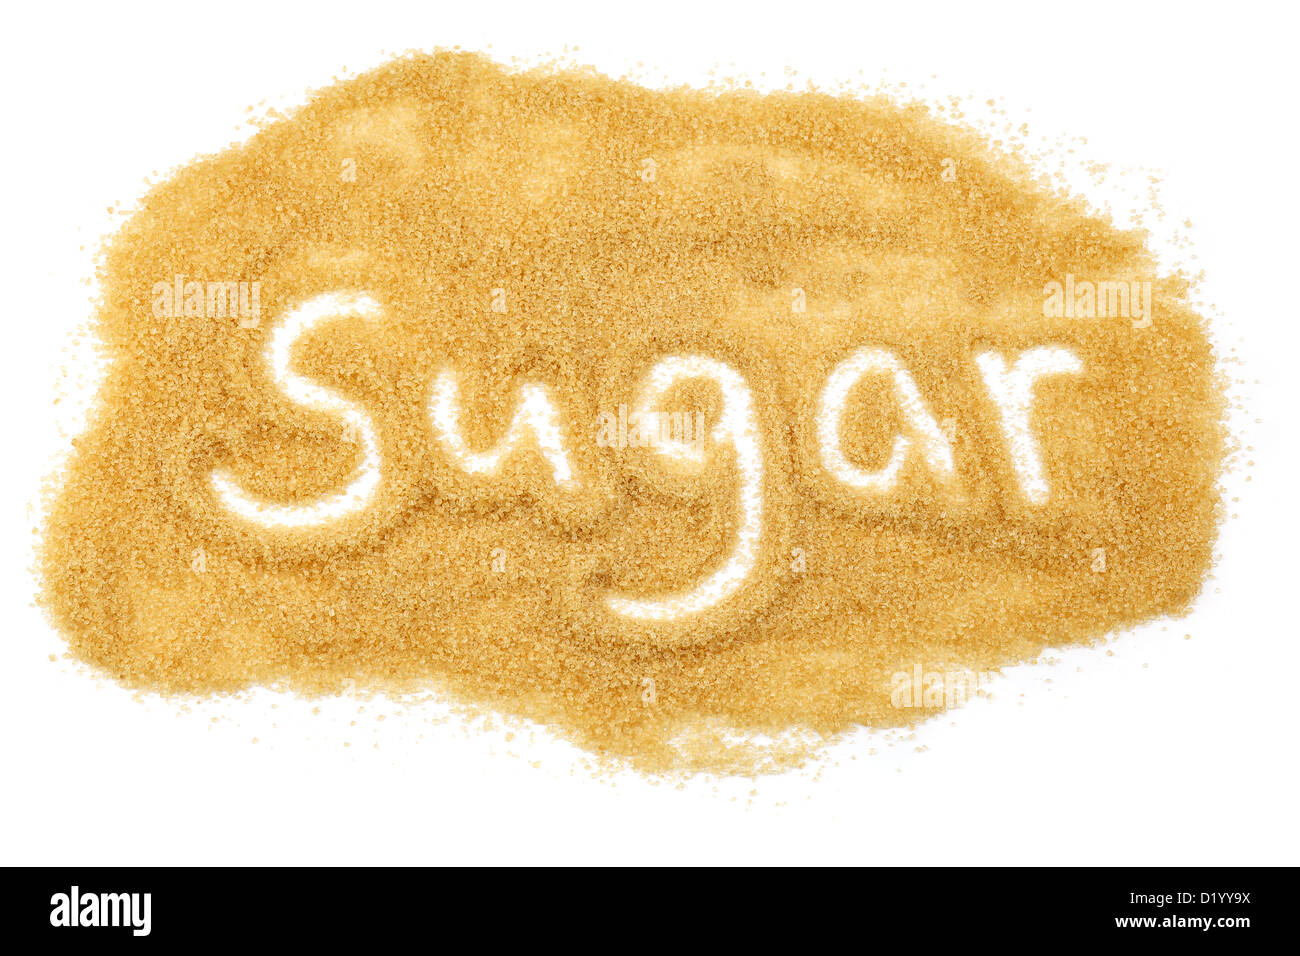 the word sugar in sugar - Stock Image